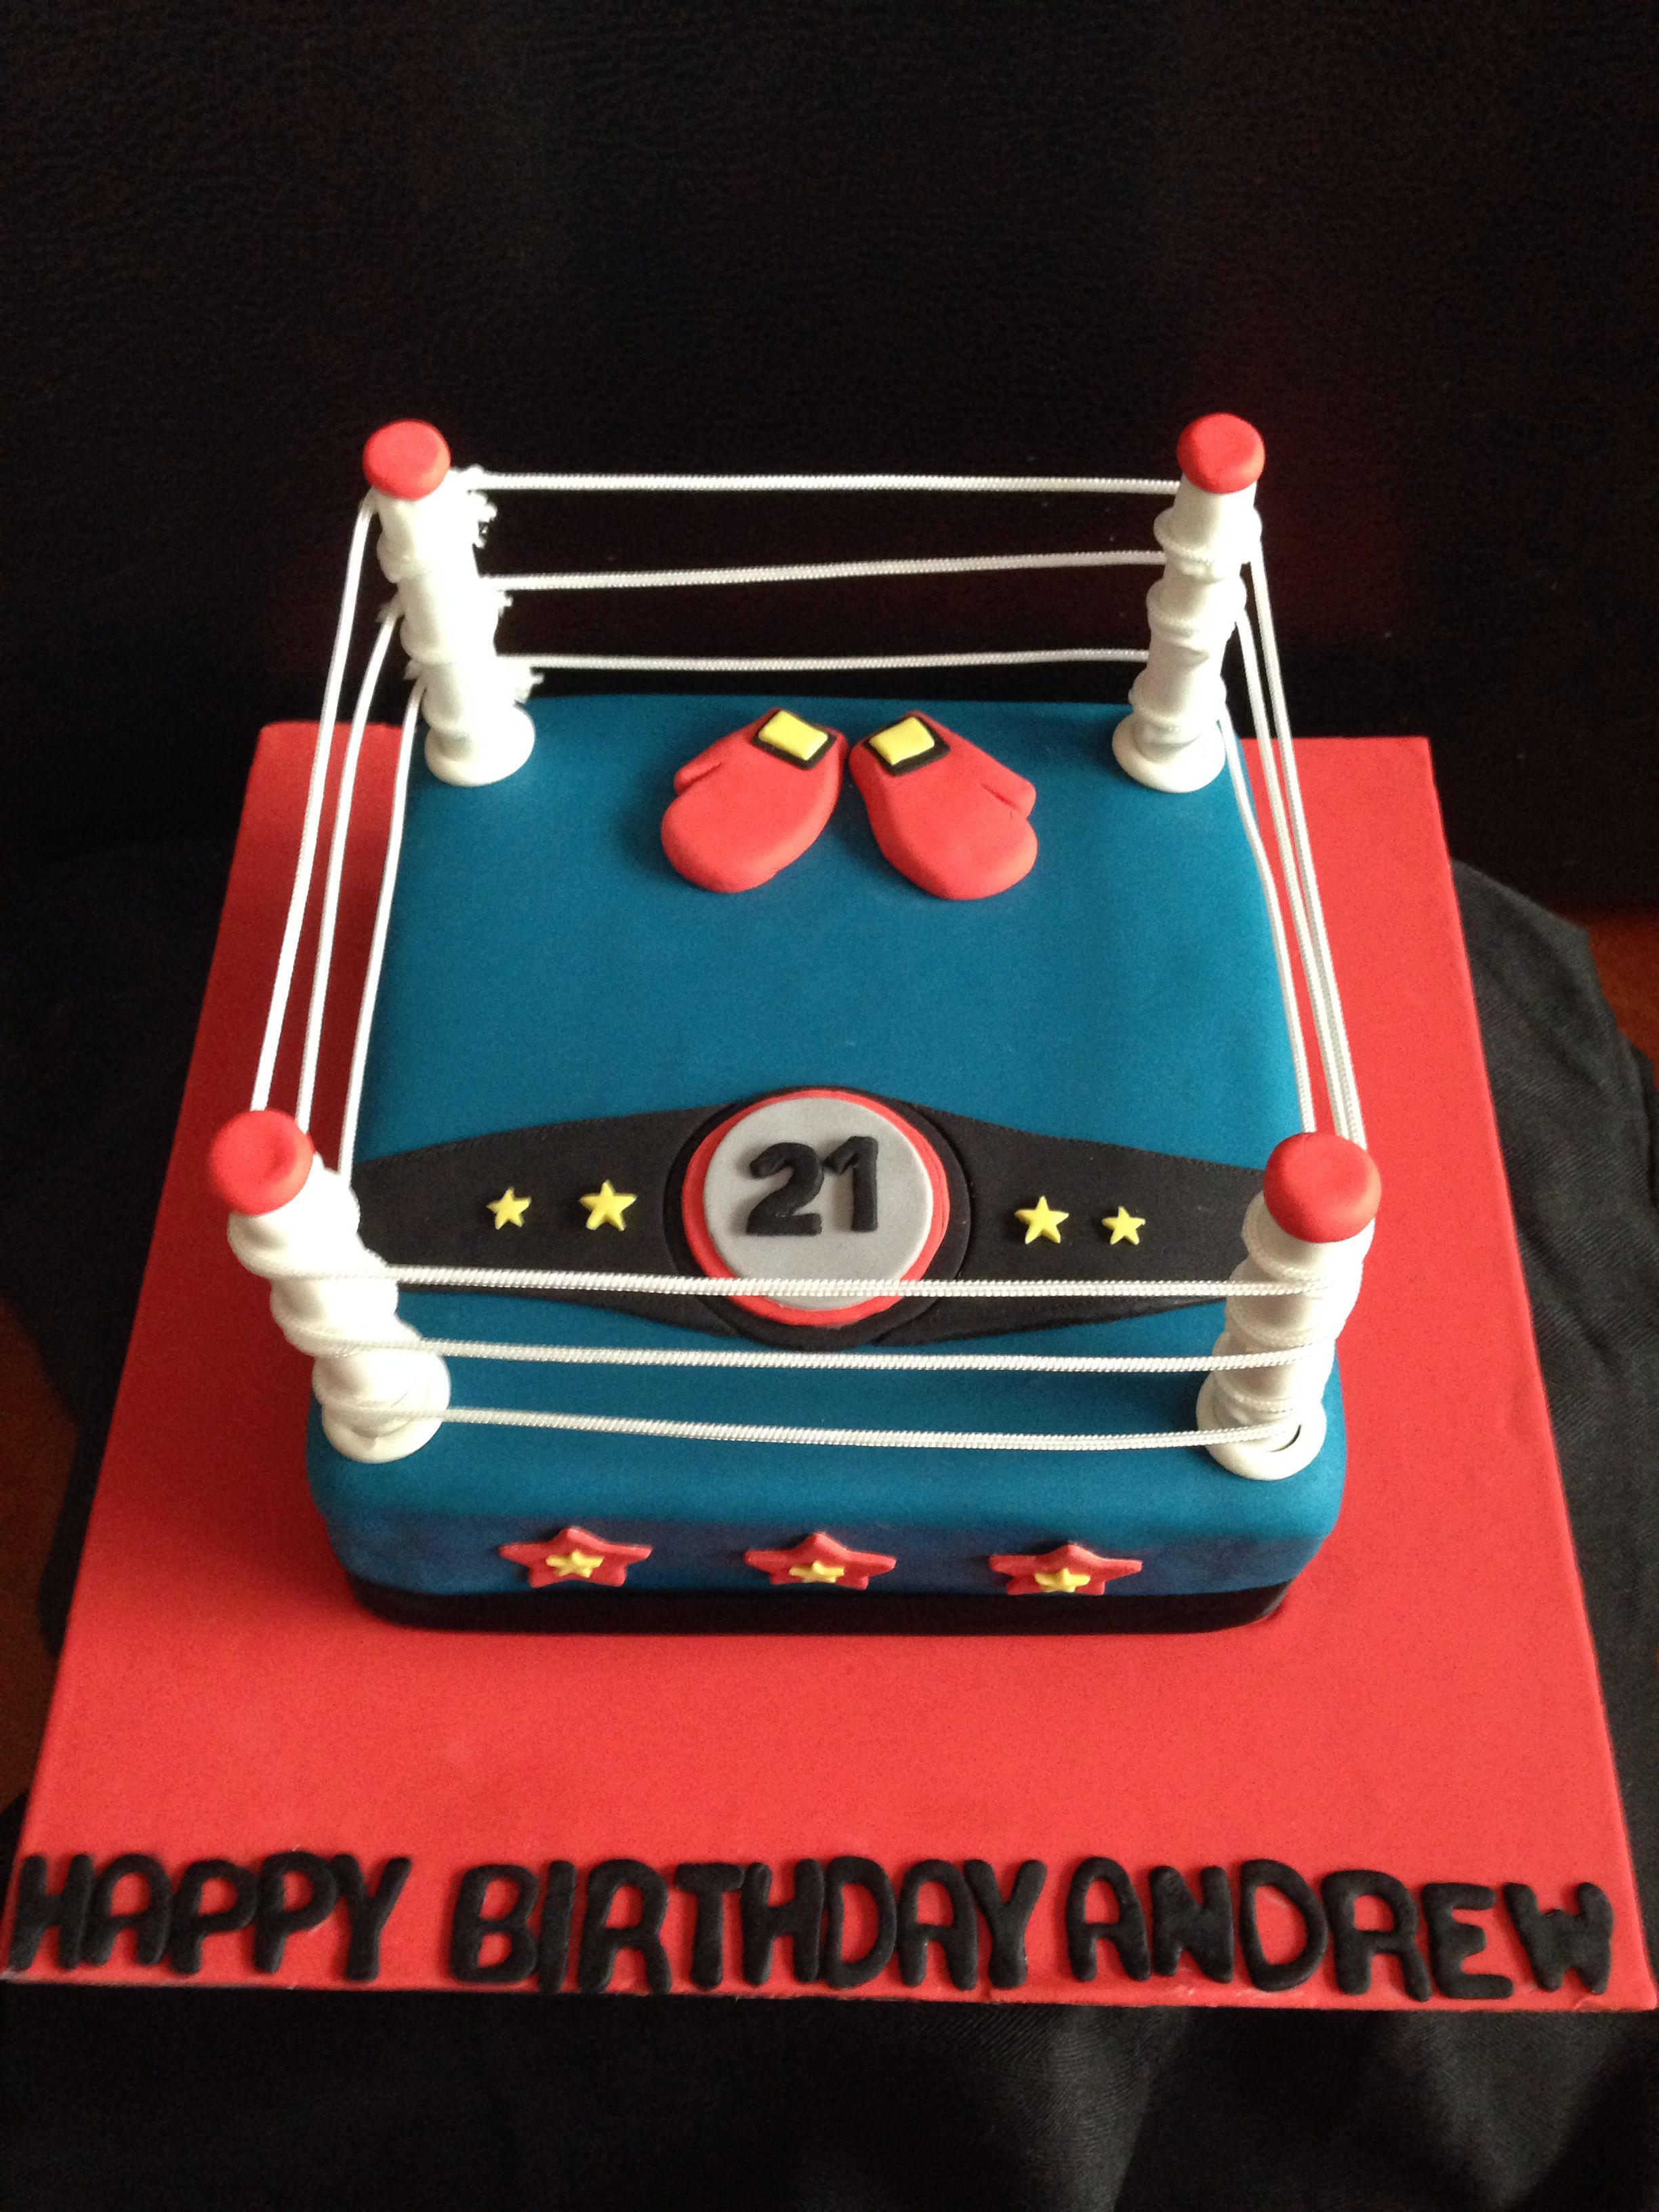 Magnificent Boxing Ring Birthday Cake For A 21St 21St Birthday Cake Funny Birthday Cards Online Hendilapandamsfinfo